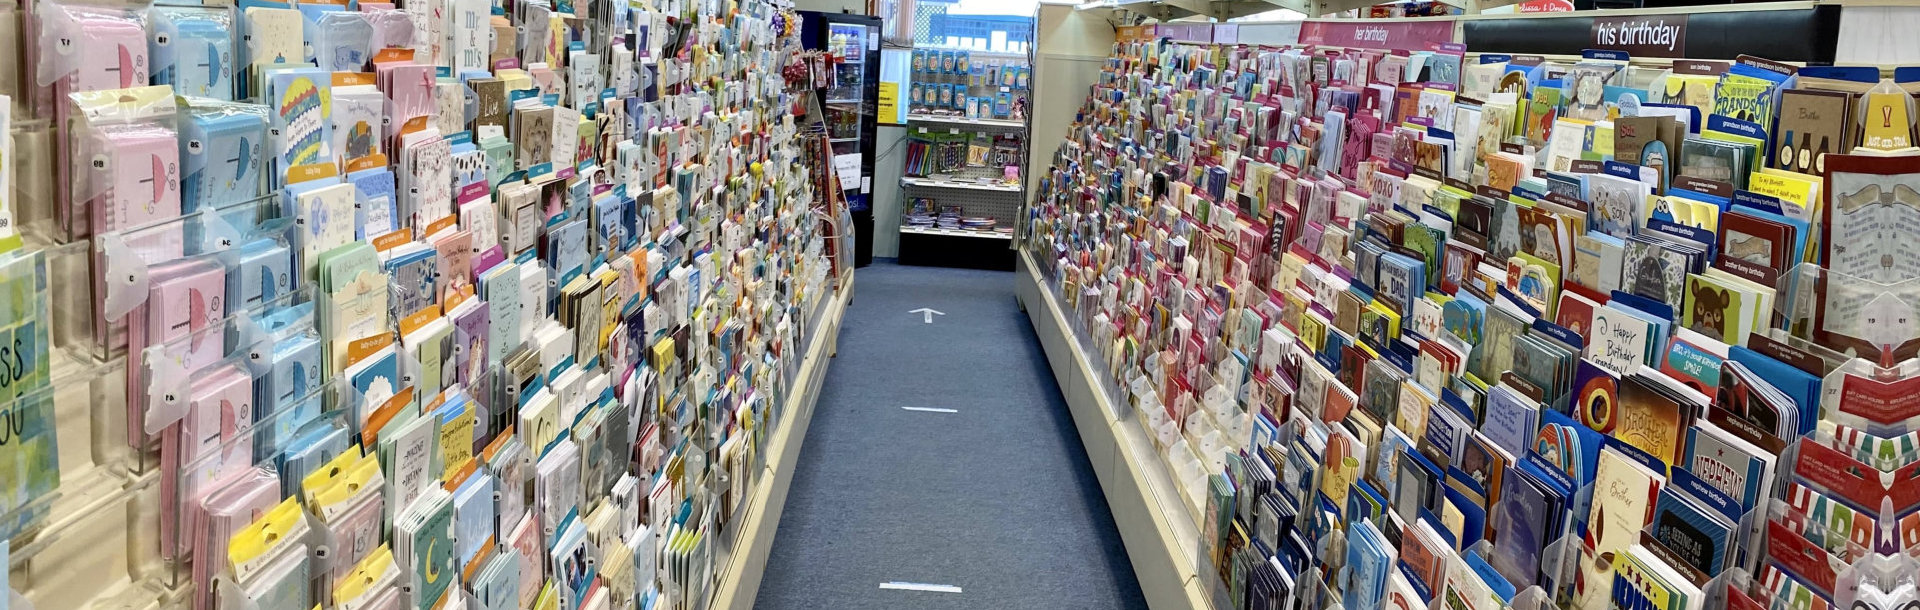 aisle with merchandise